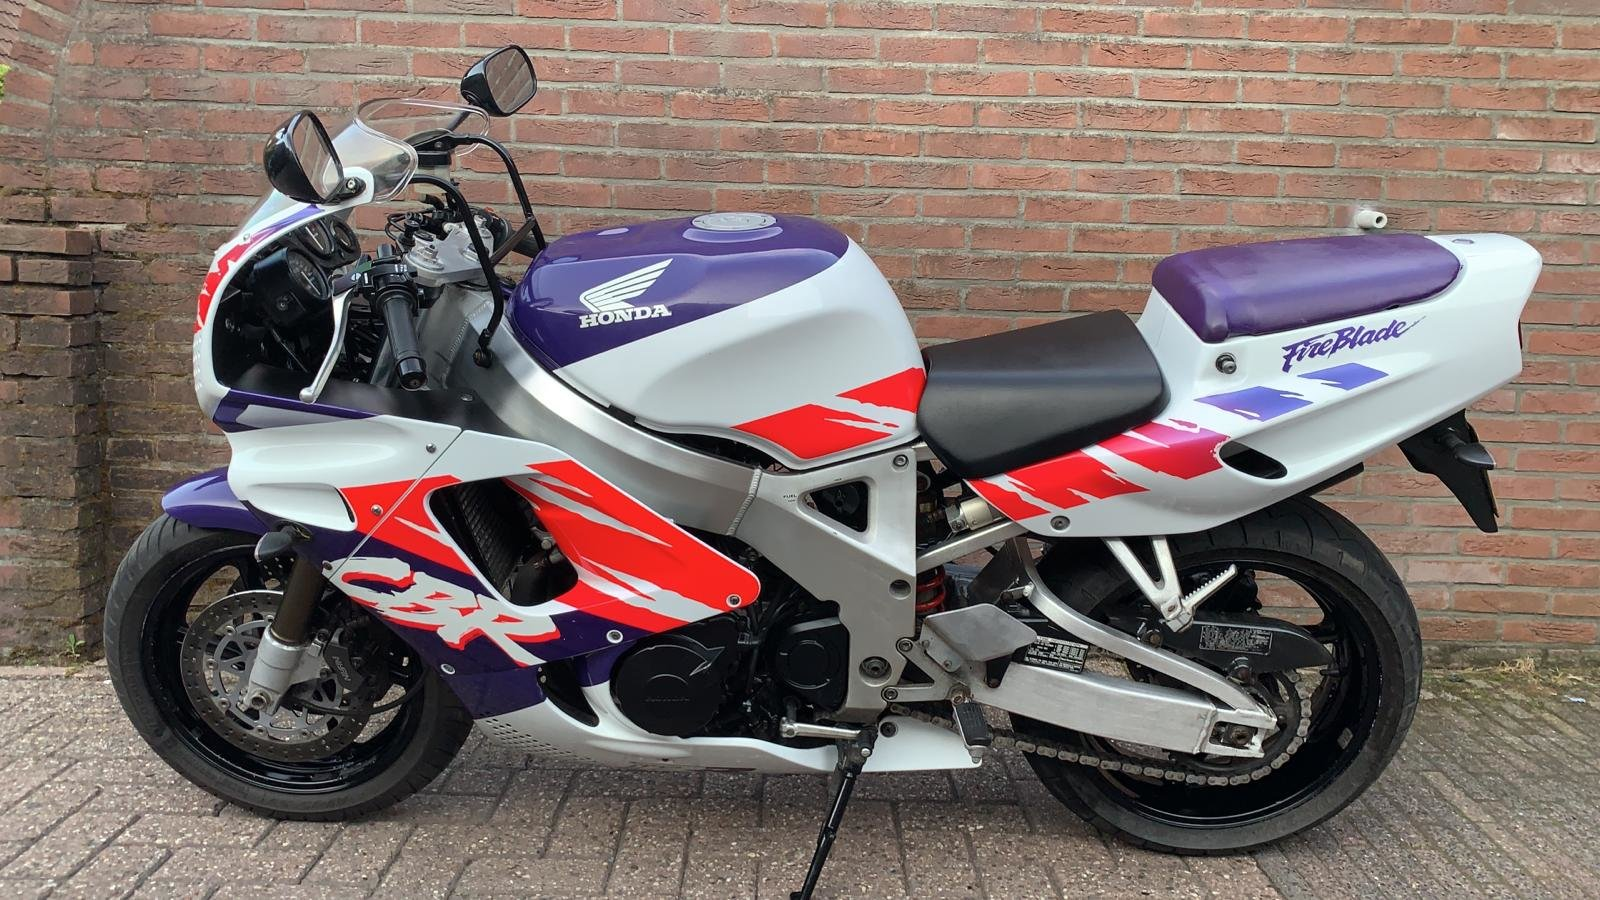 Honda Fireblade firste series 1993 For Sale (picture 1 of 6)